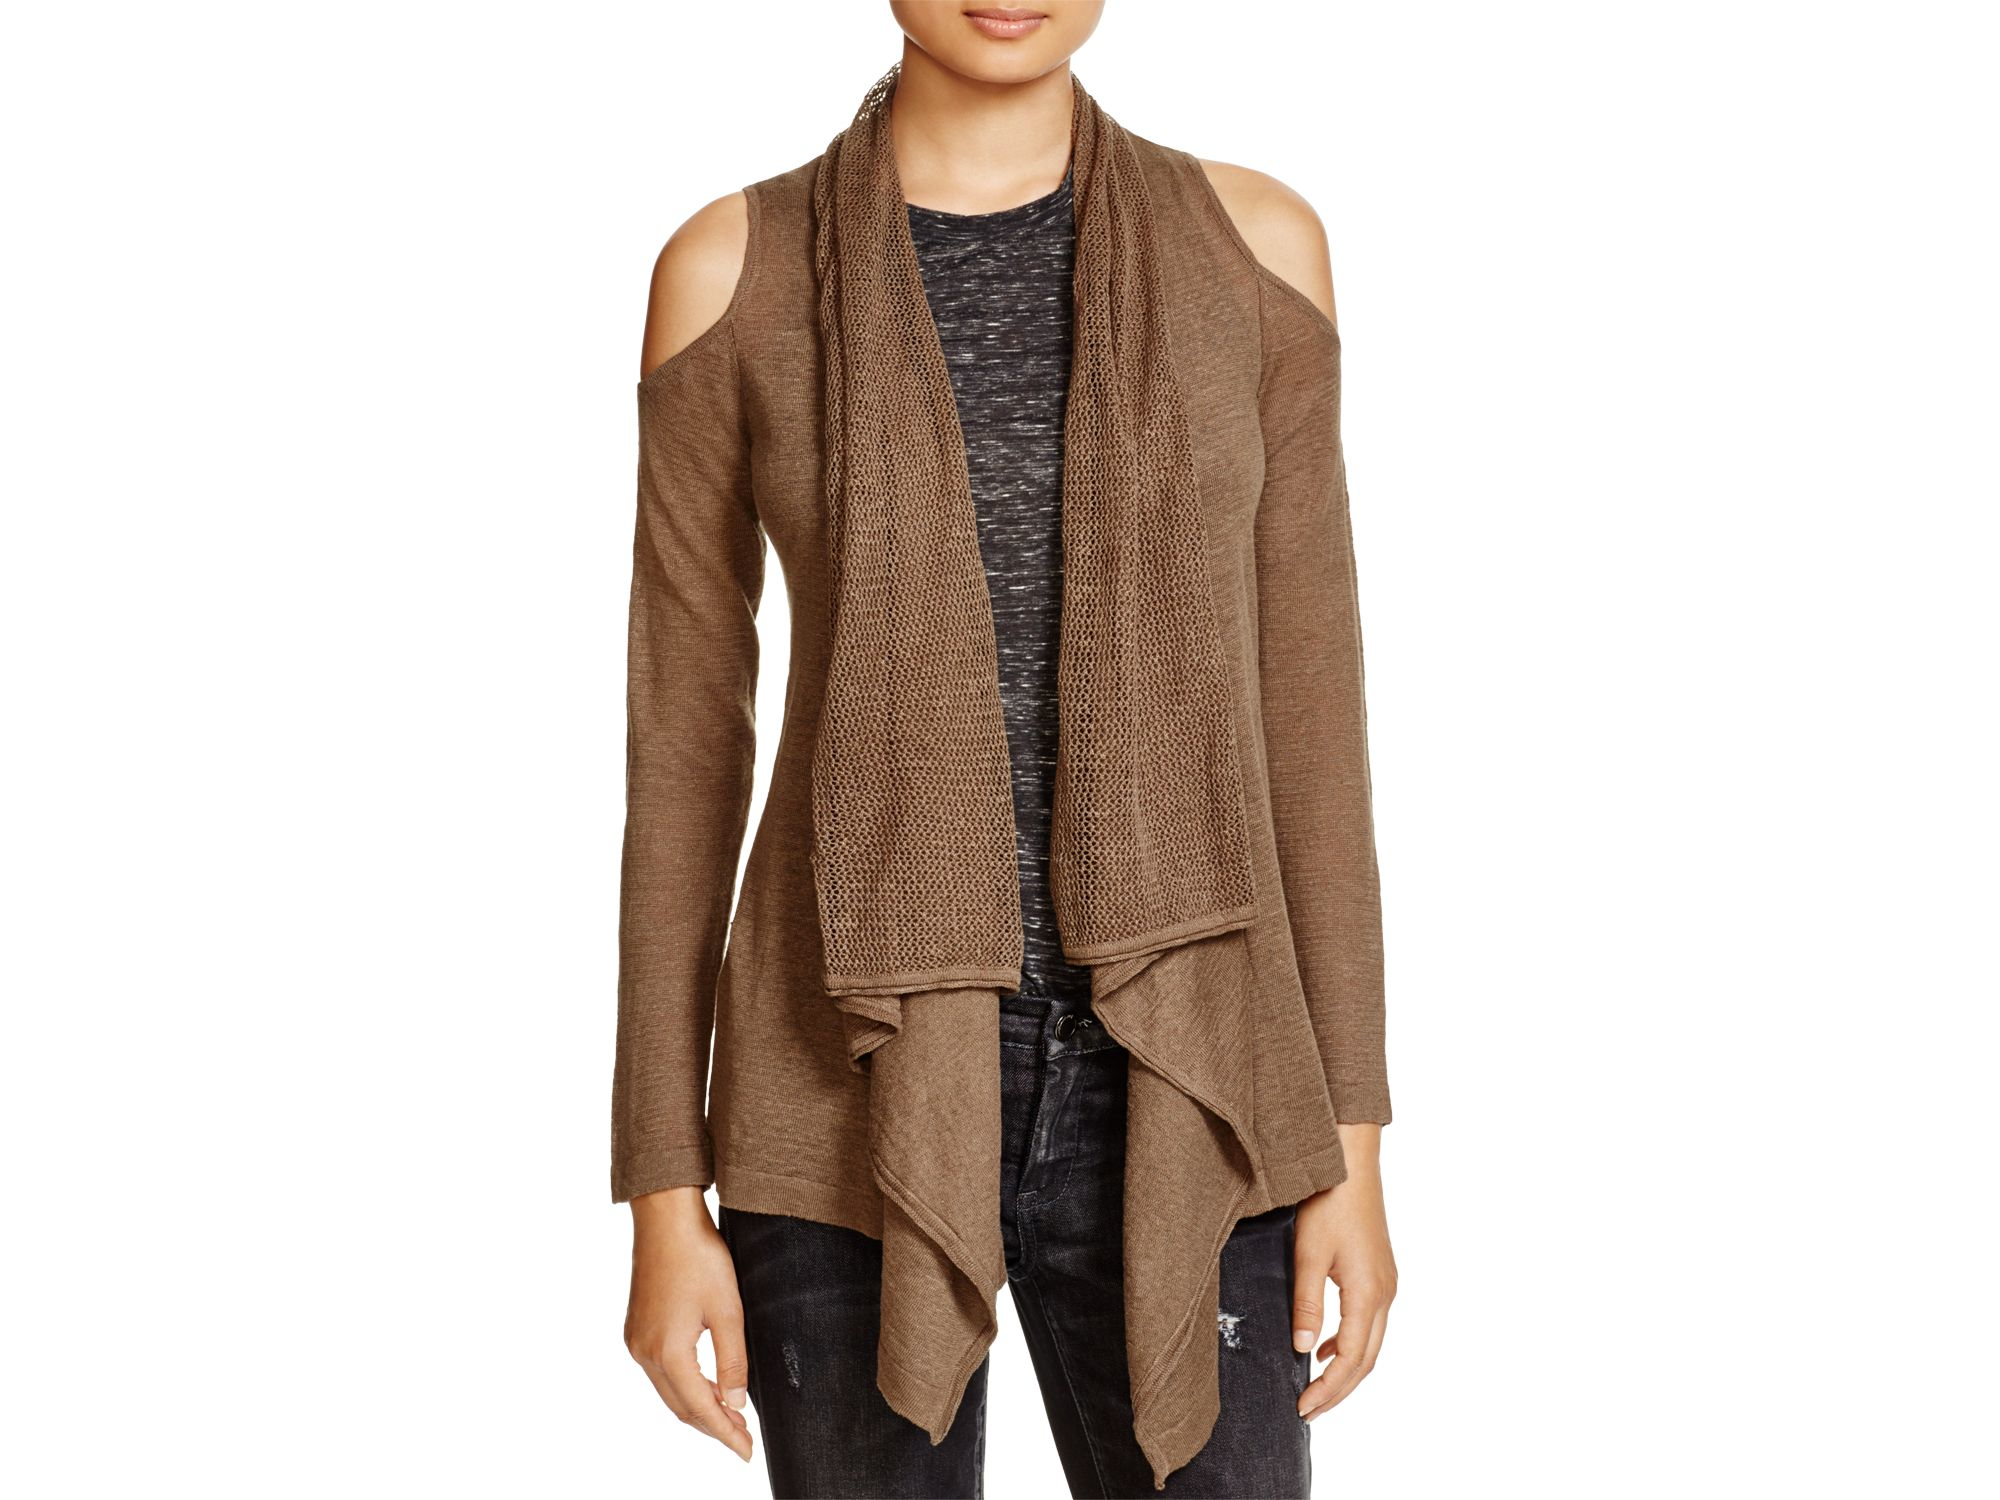 Moon & meadow Linen Open Cardigan in Brown | Lyst